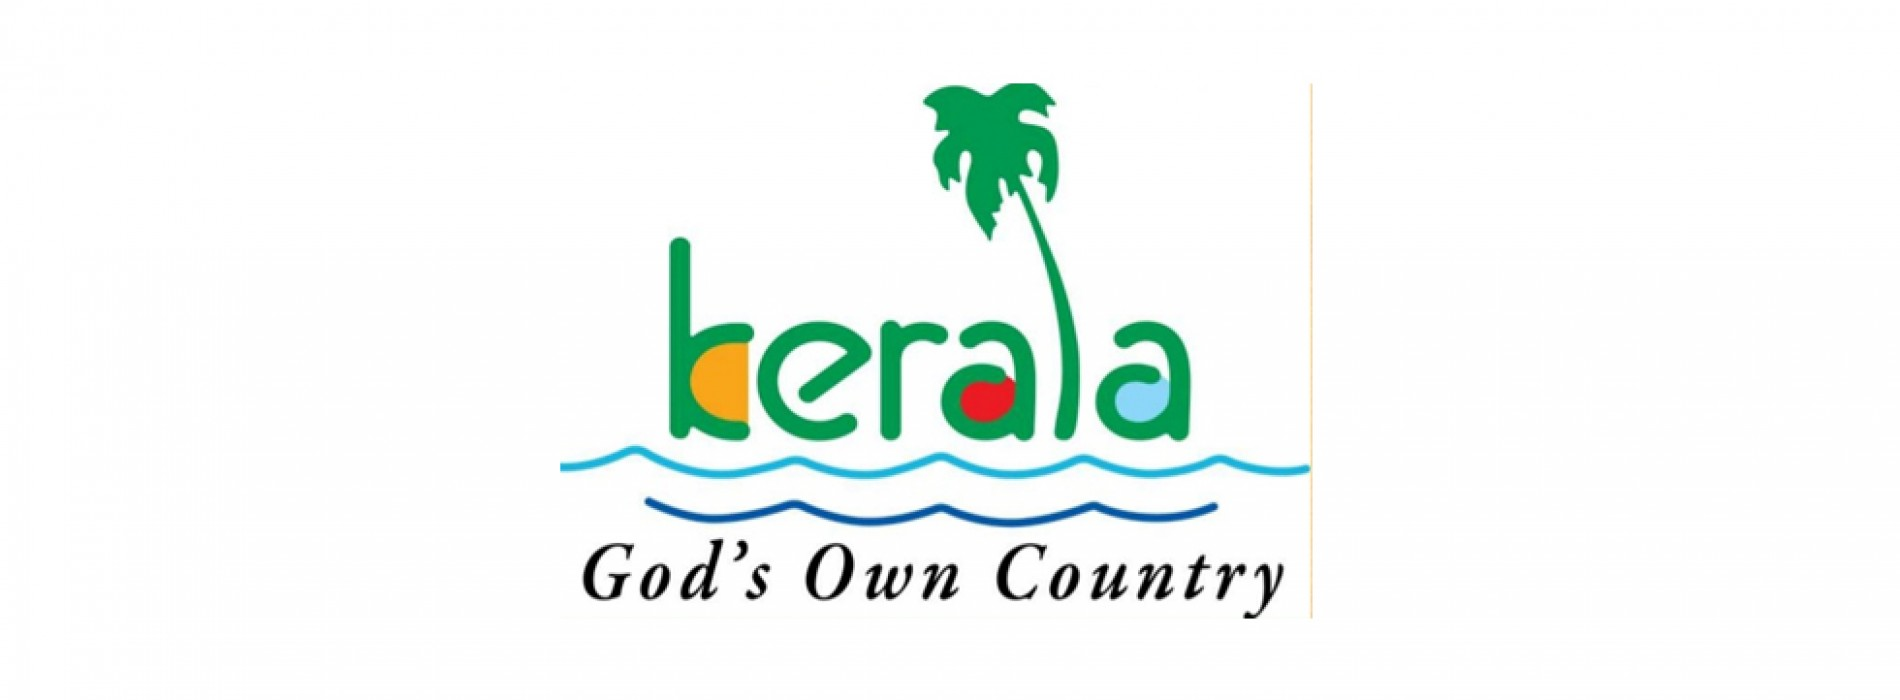 Kerala, only state from India listed in Nat Geo's 'Around the World in 24 Hours'